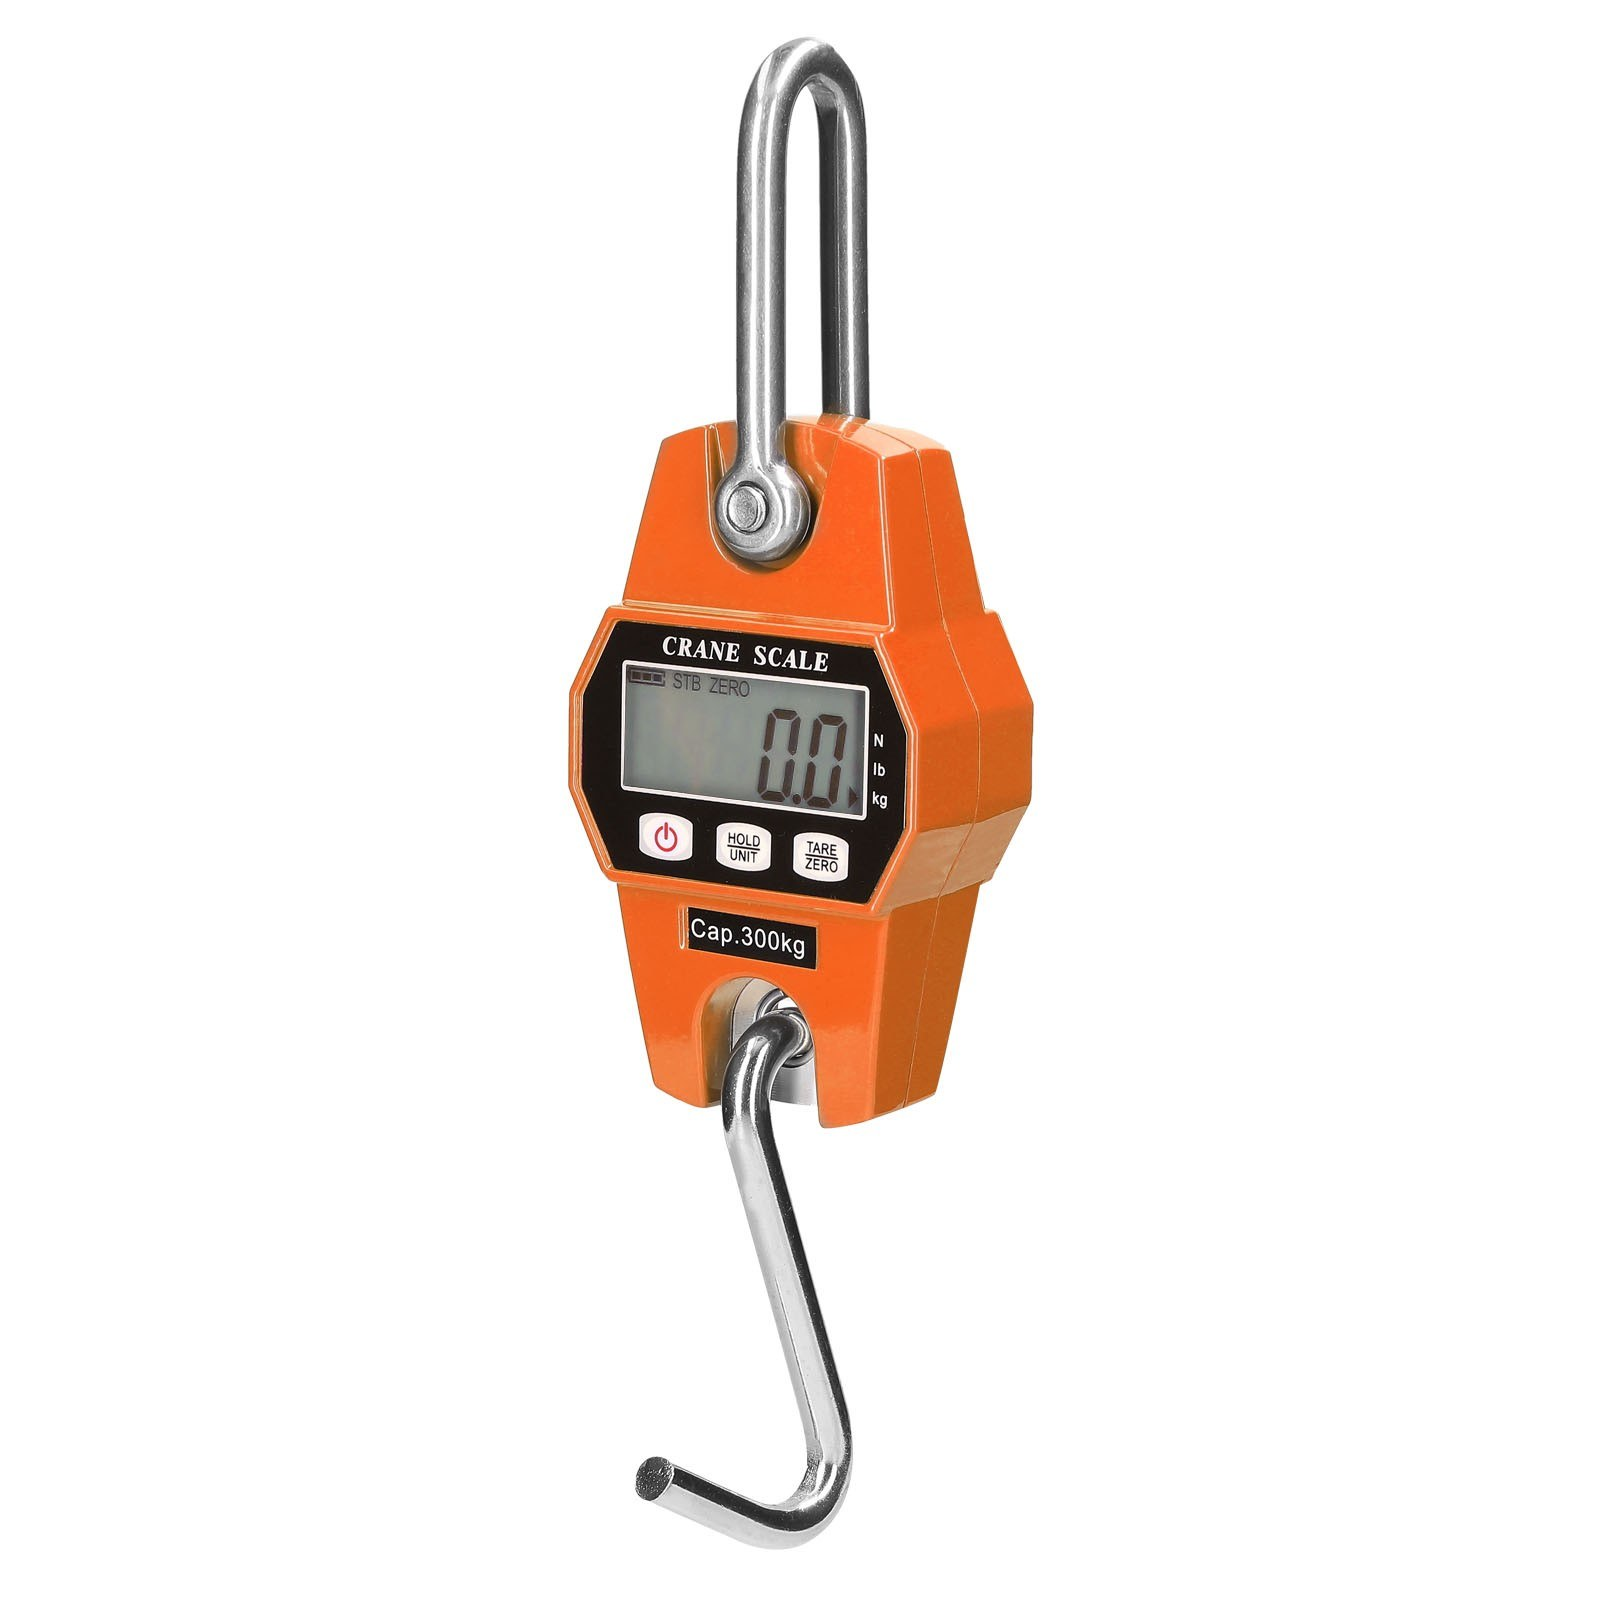 Tomtop - 33% OFFF Mini LCD Digital 300kg Portable Industrial Electronic Heavy Duty Weight Hook, Free Shipping $29.99